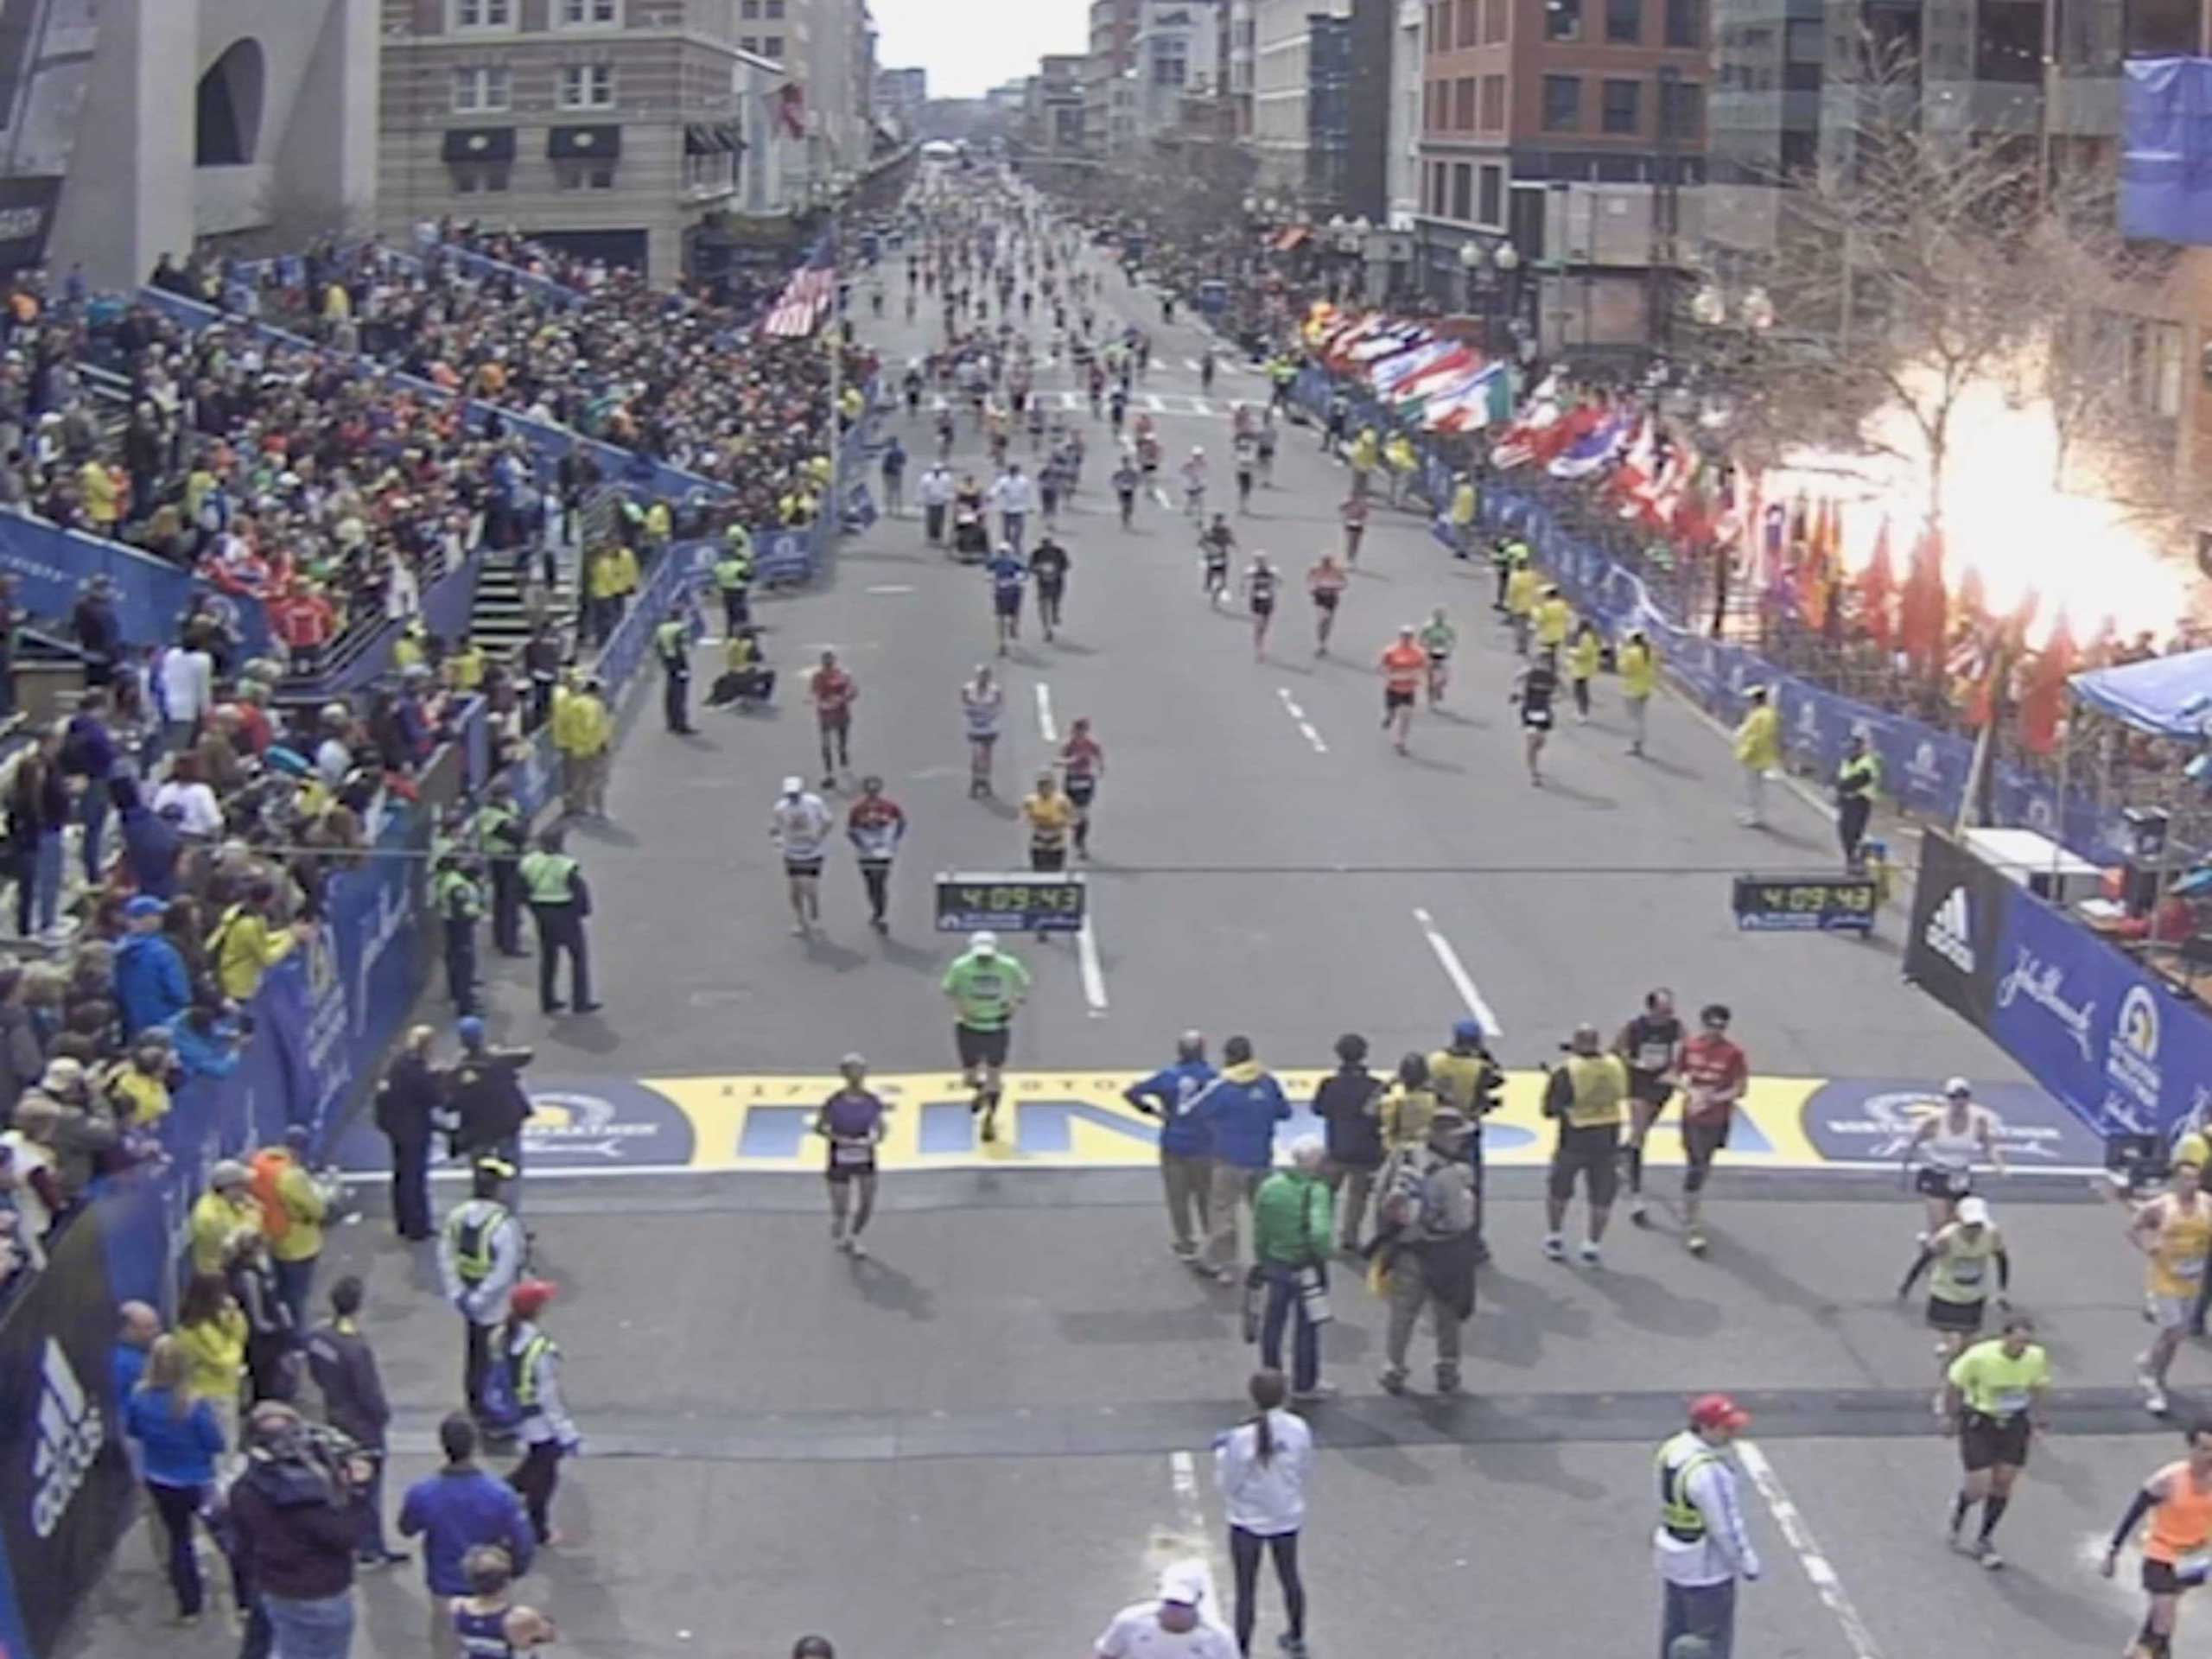 This still image capture from video, which was released as evidence in the trial of Dzhokhar Tsarnaev, shows the chaos as a bomb explodes during the 2013 Boston Marathon.